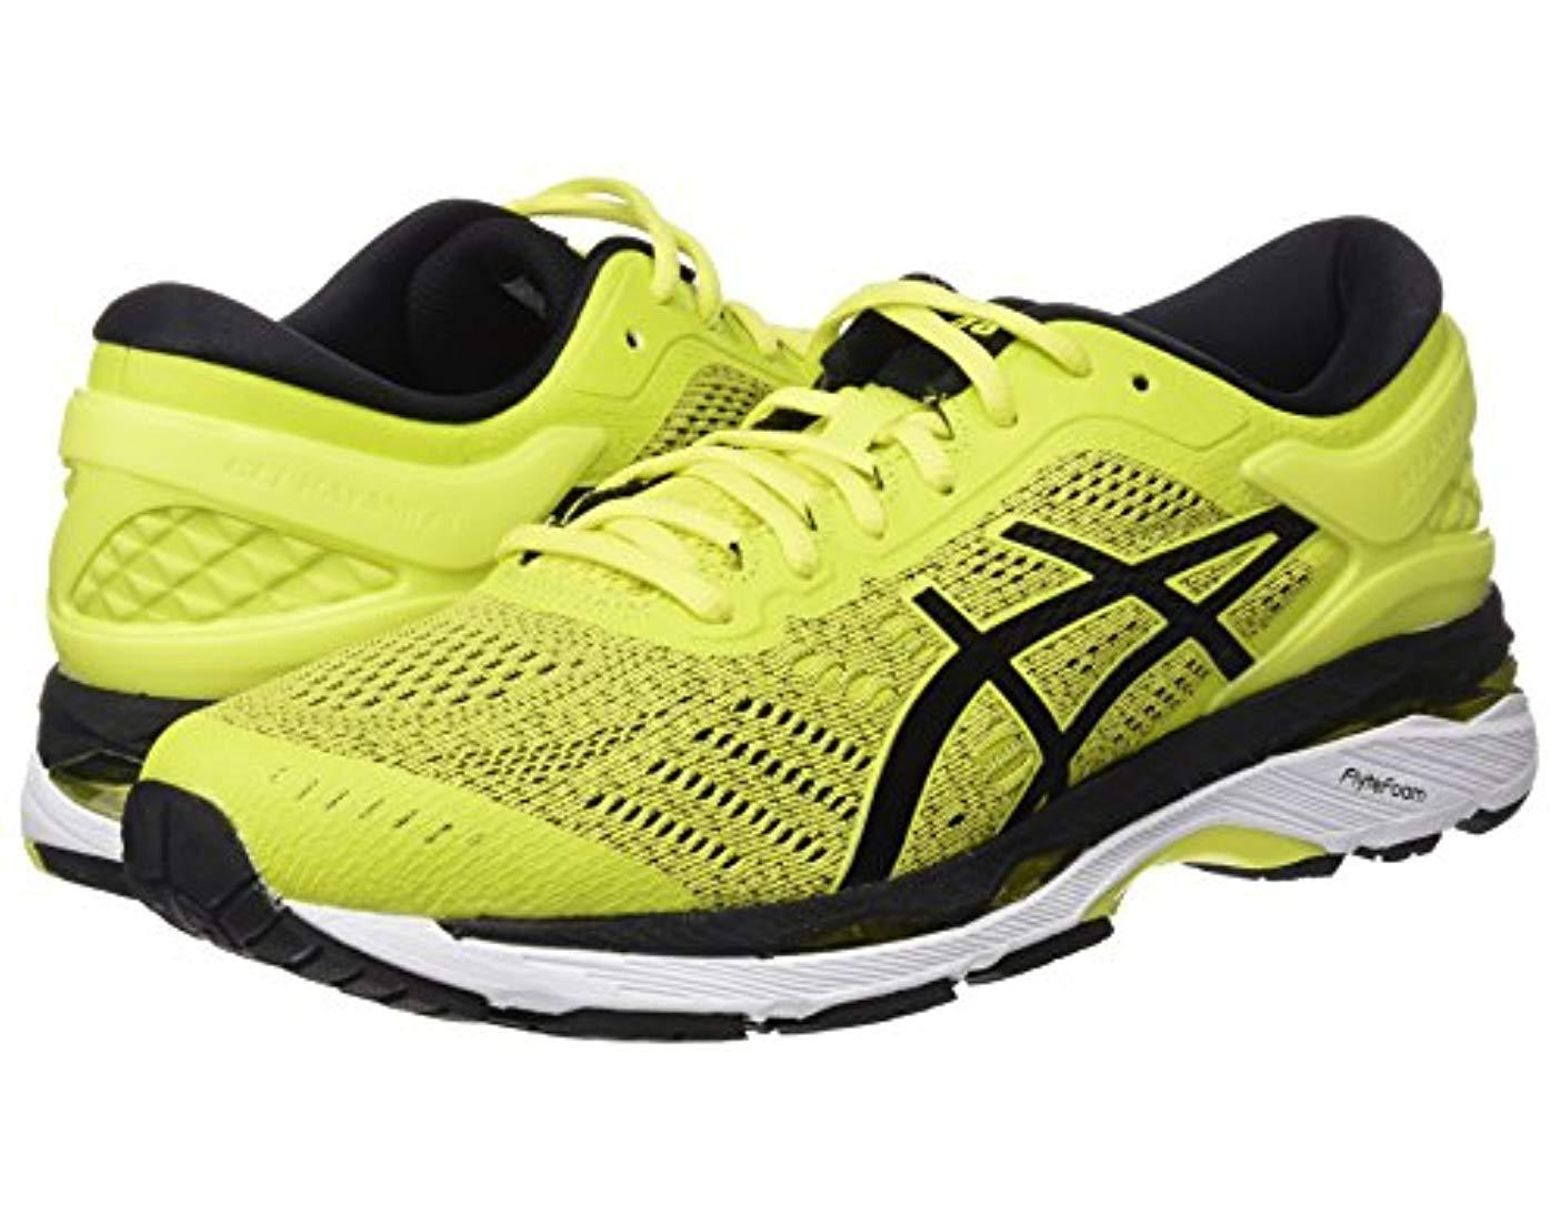 36dfce25d553 Asics Gel-kayano 24 Running Shoes in Yellow for Men - Save 22% - Lyst